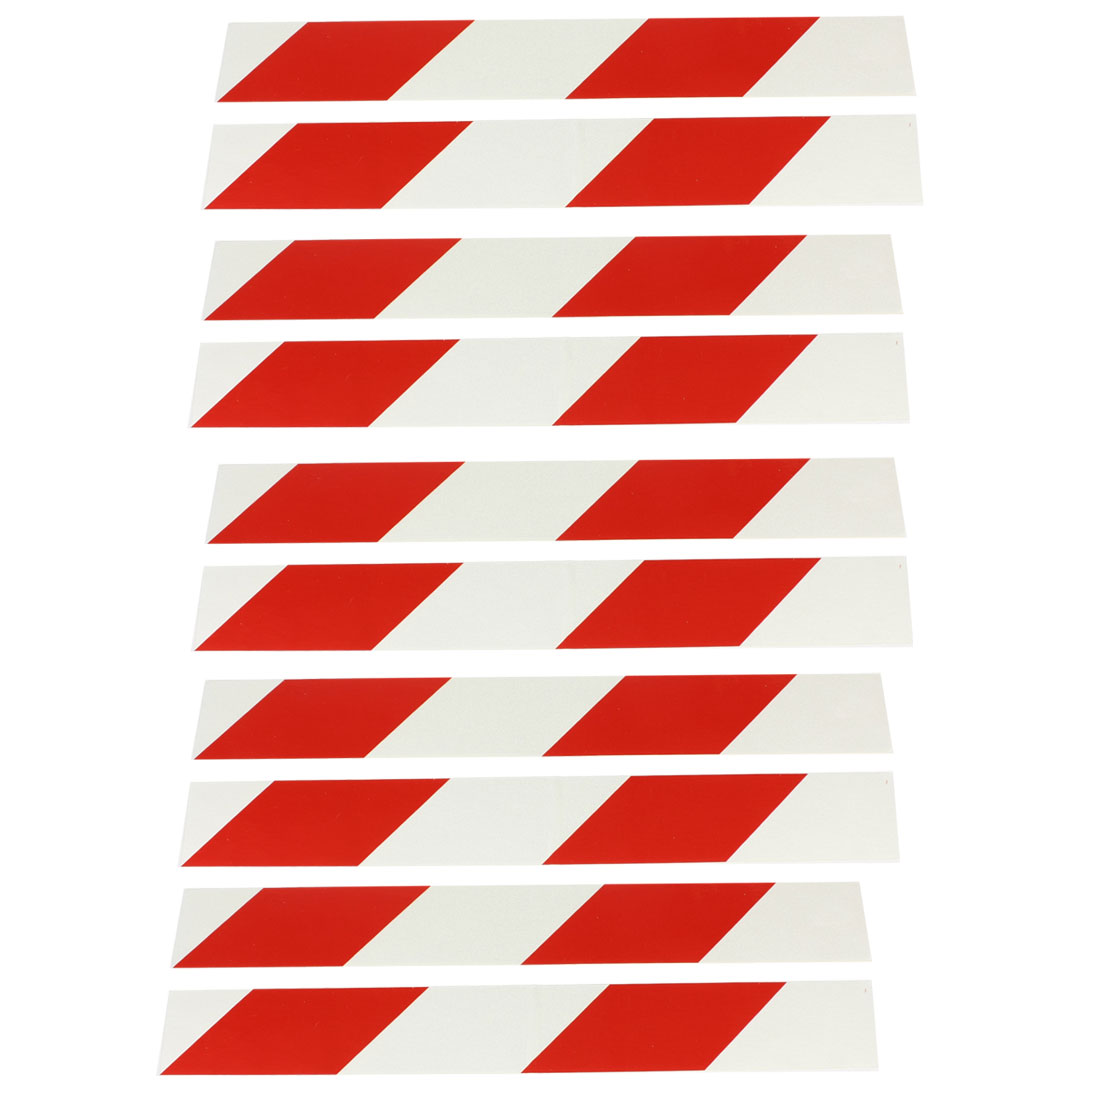 10 Pcs Adhesive Red Silver Tone Diagonal Stripe Car Reflective Sticker Decal